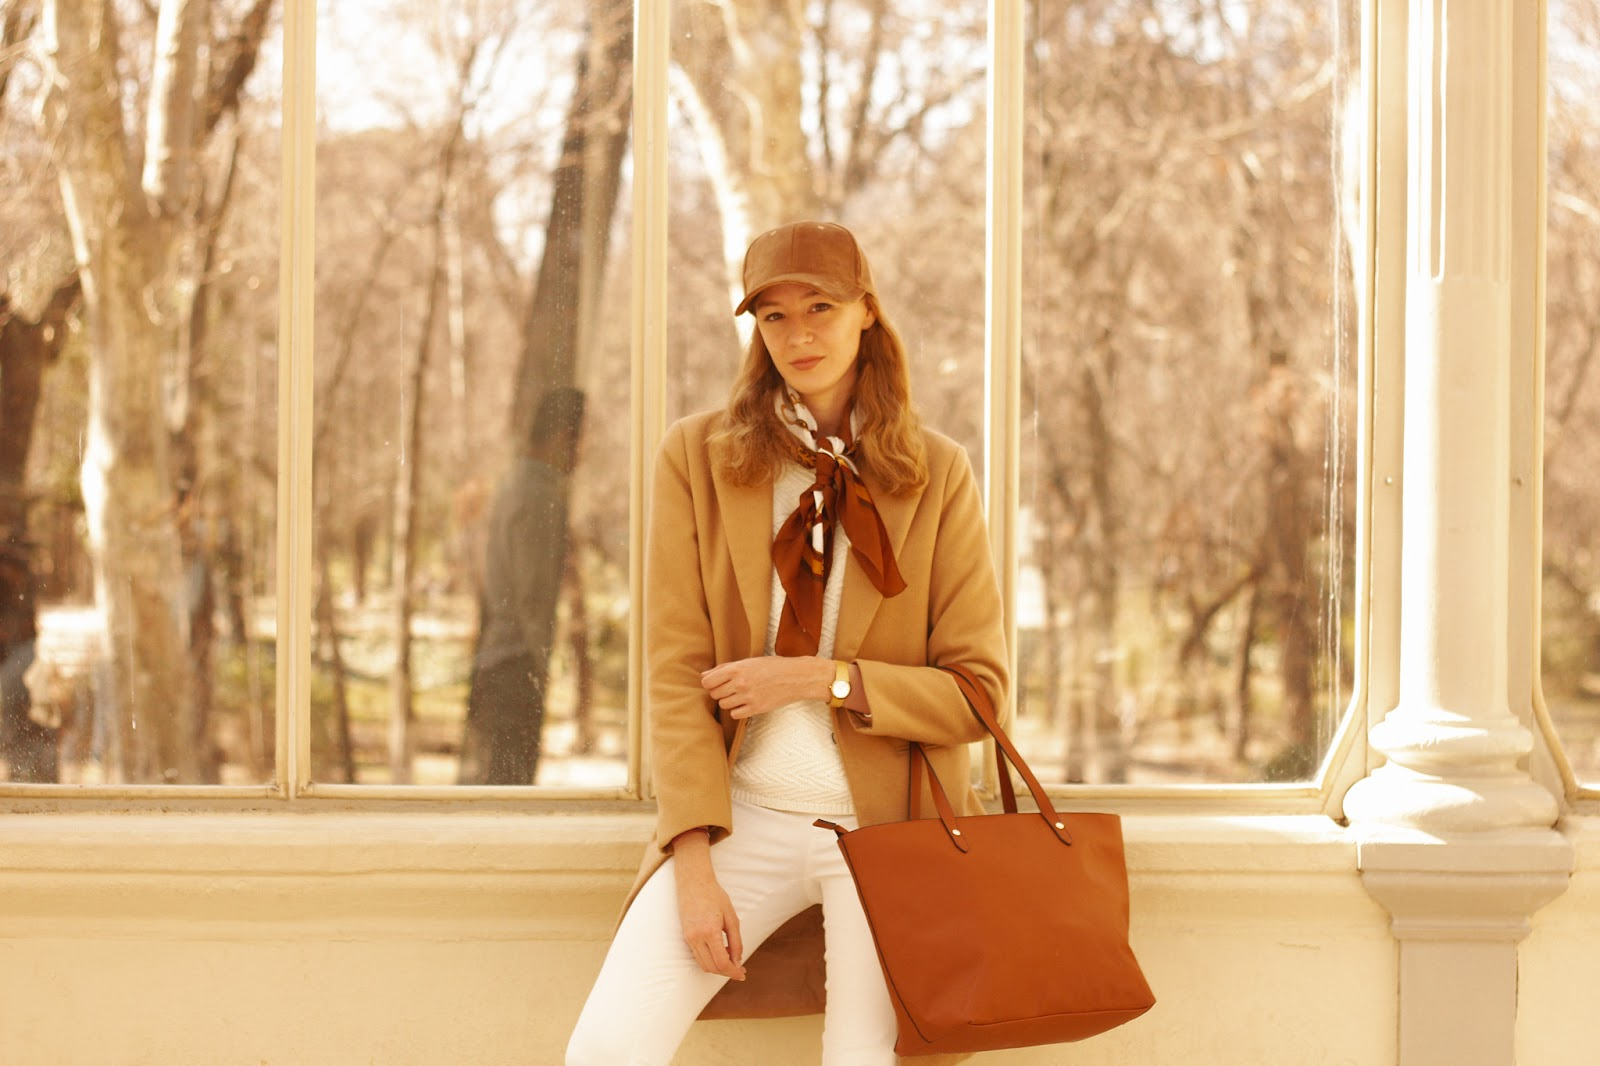 sporty-look-effortless-style-camel-coat-white-total-look-dayaday-bag